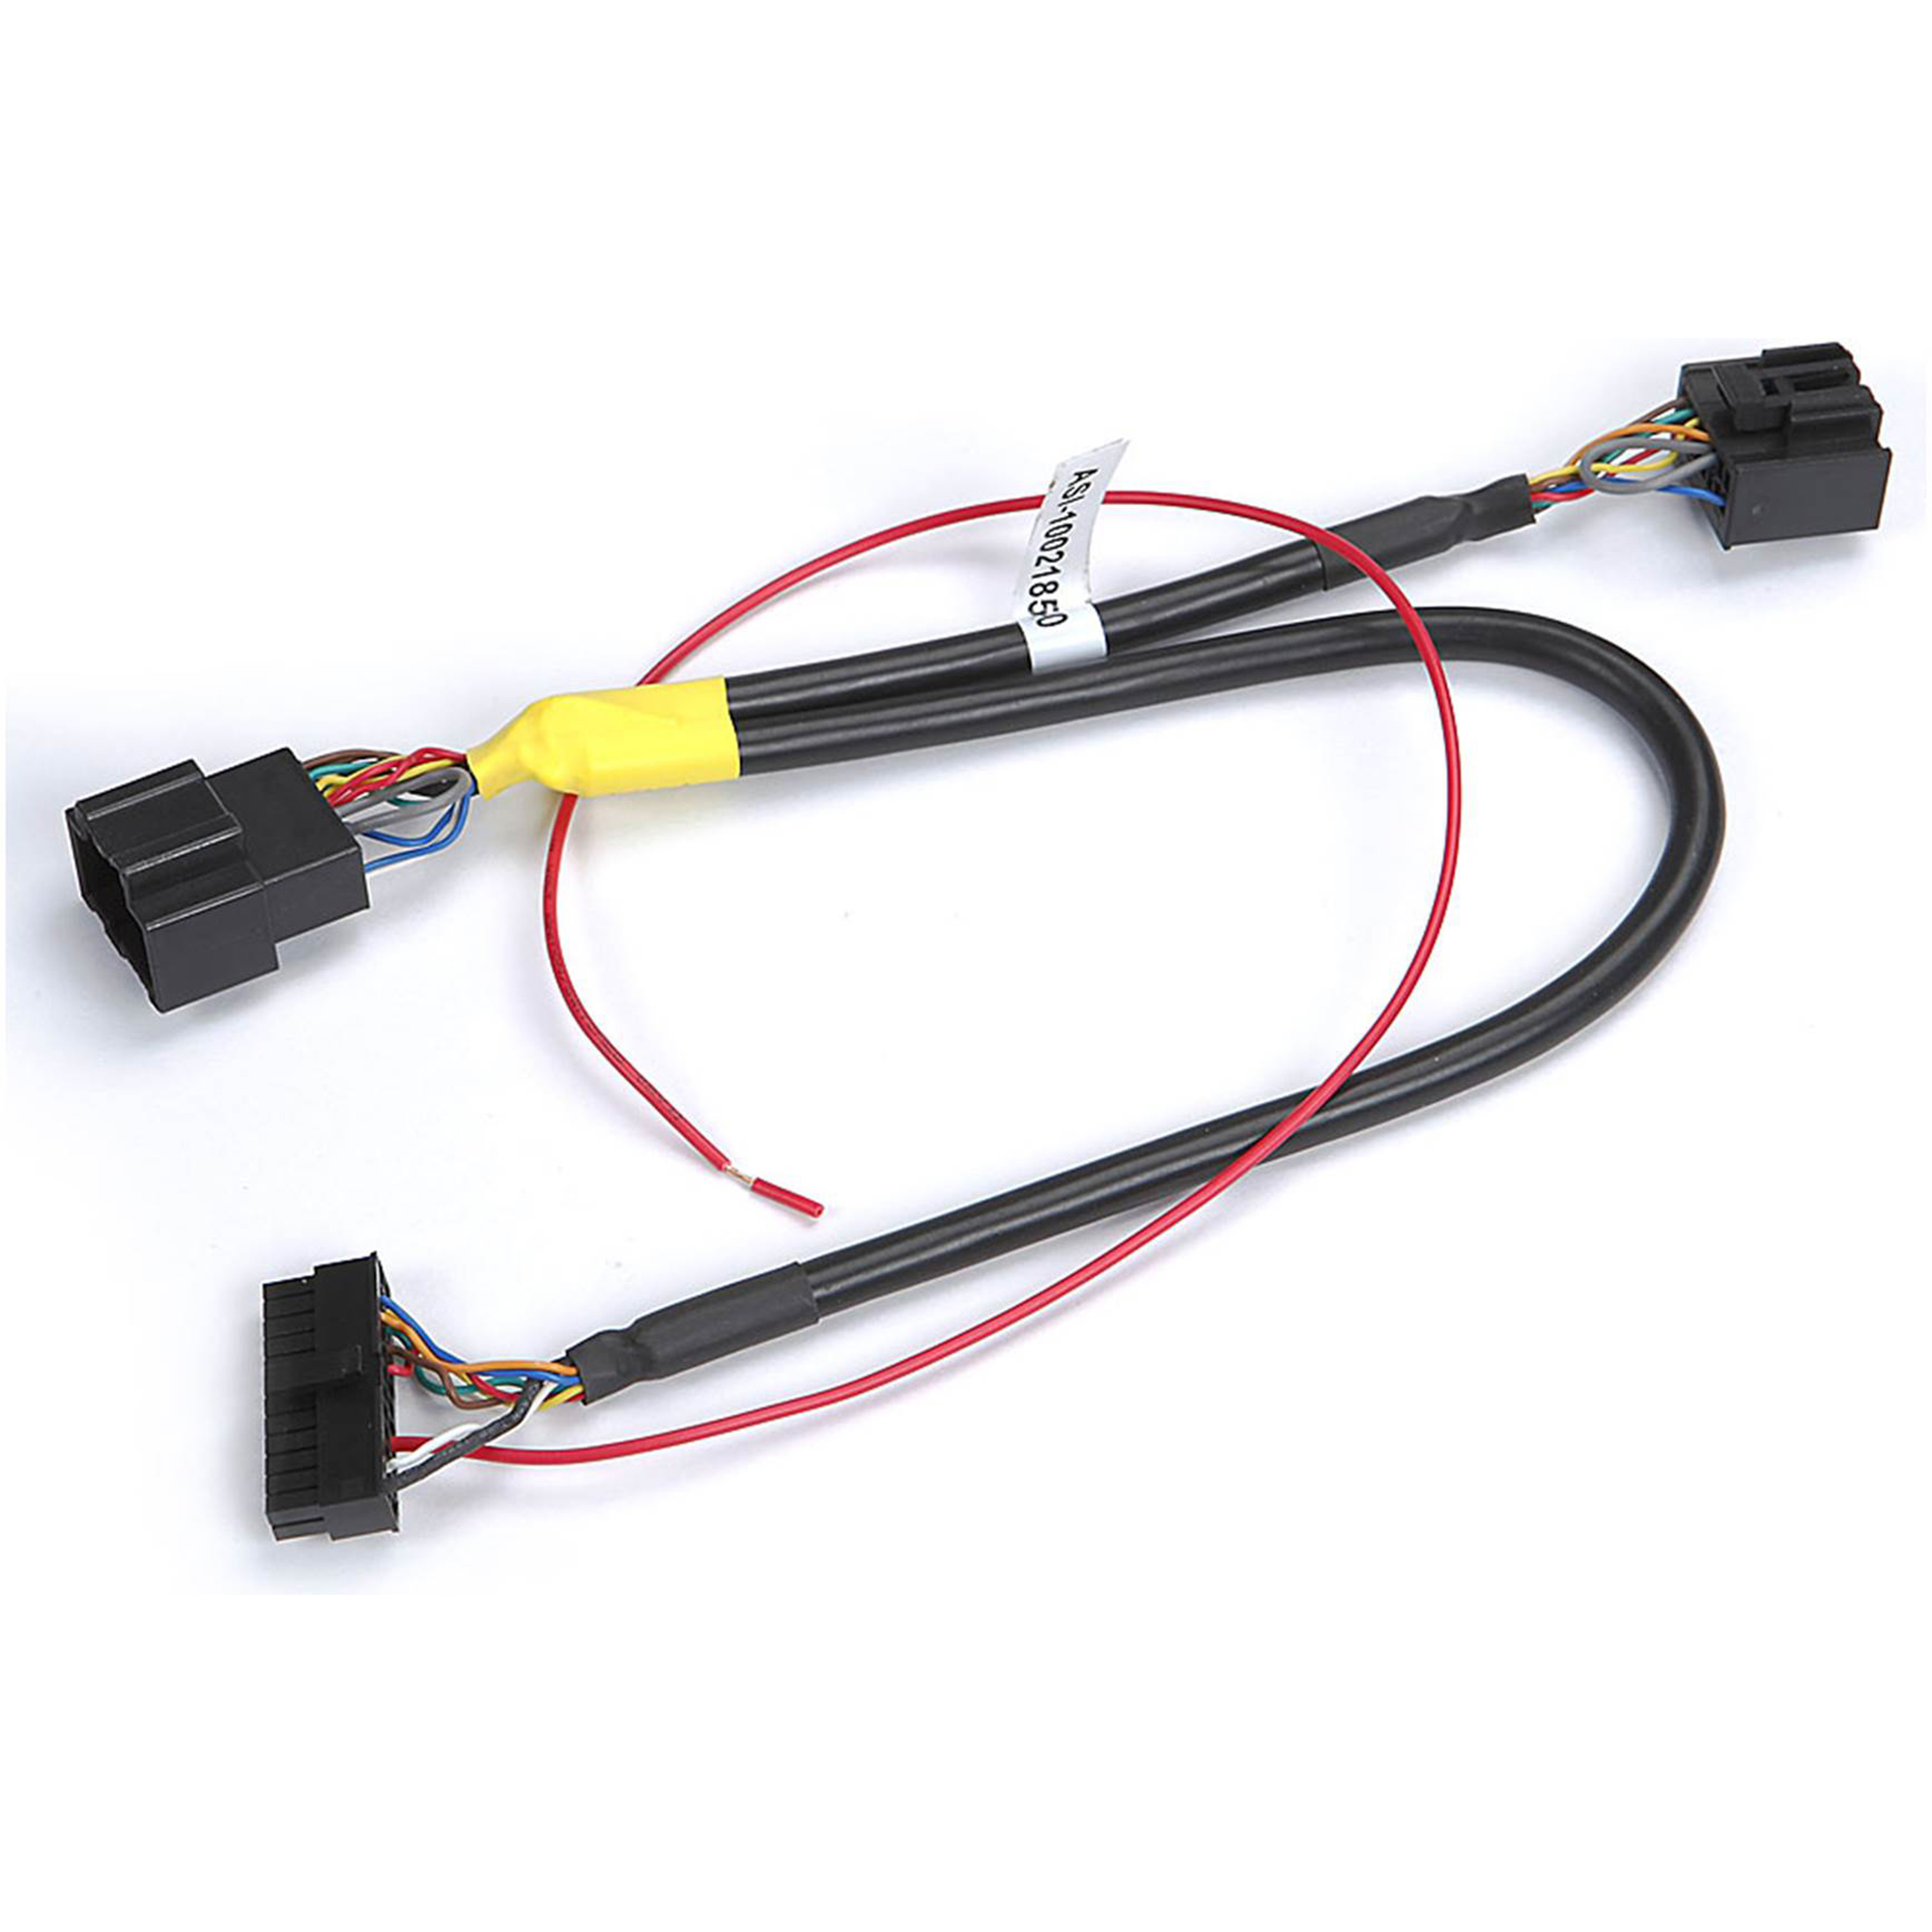 hight resolution of pie gmlan x1 gm radio wiring harness for 06 08 select gm vehicles details about pie